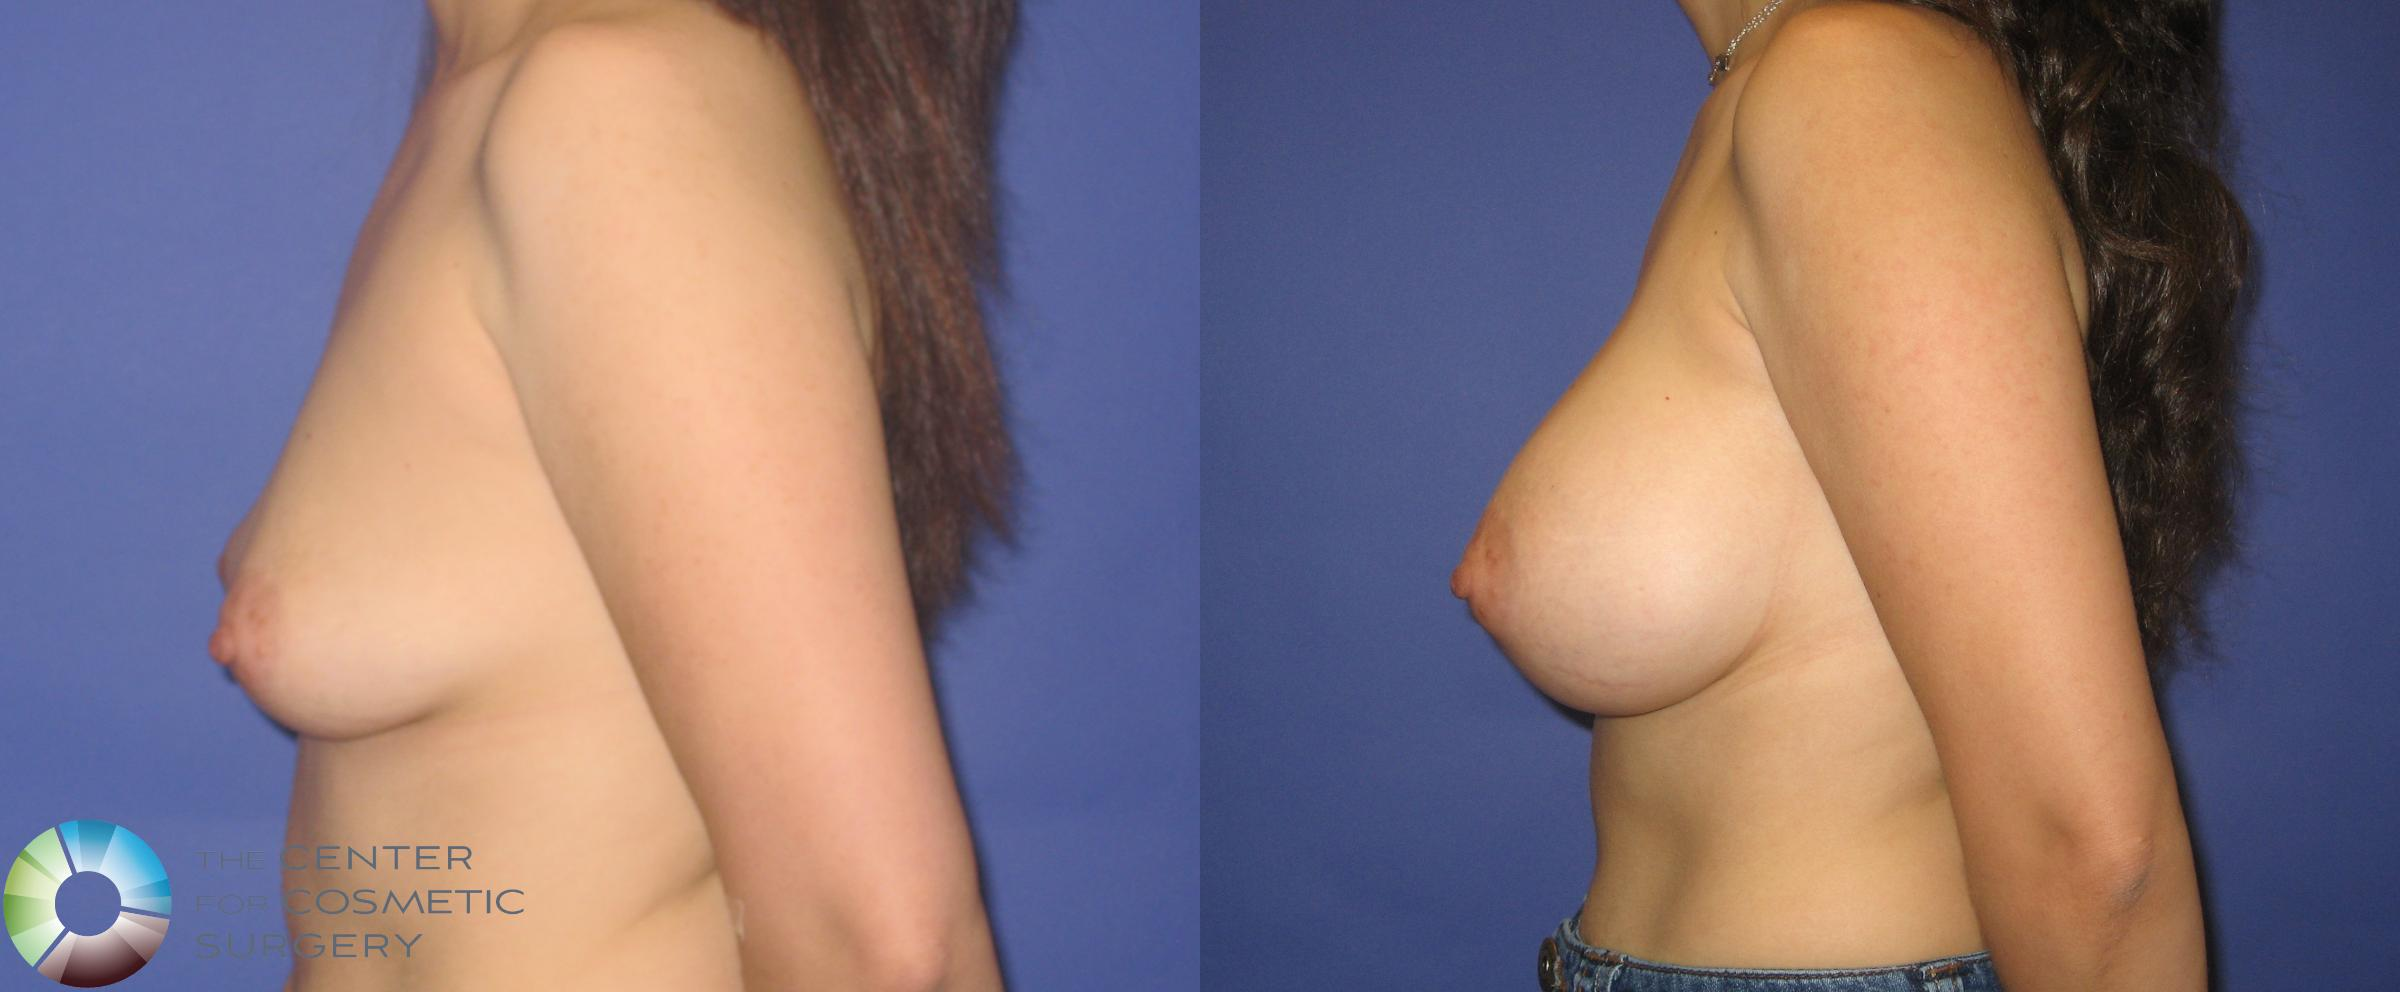 Breast Augmentation Case 273 Before & After View #3 | Golden, CO | The Center for Cosmetic Surgery